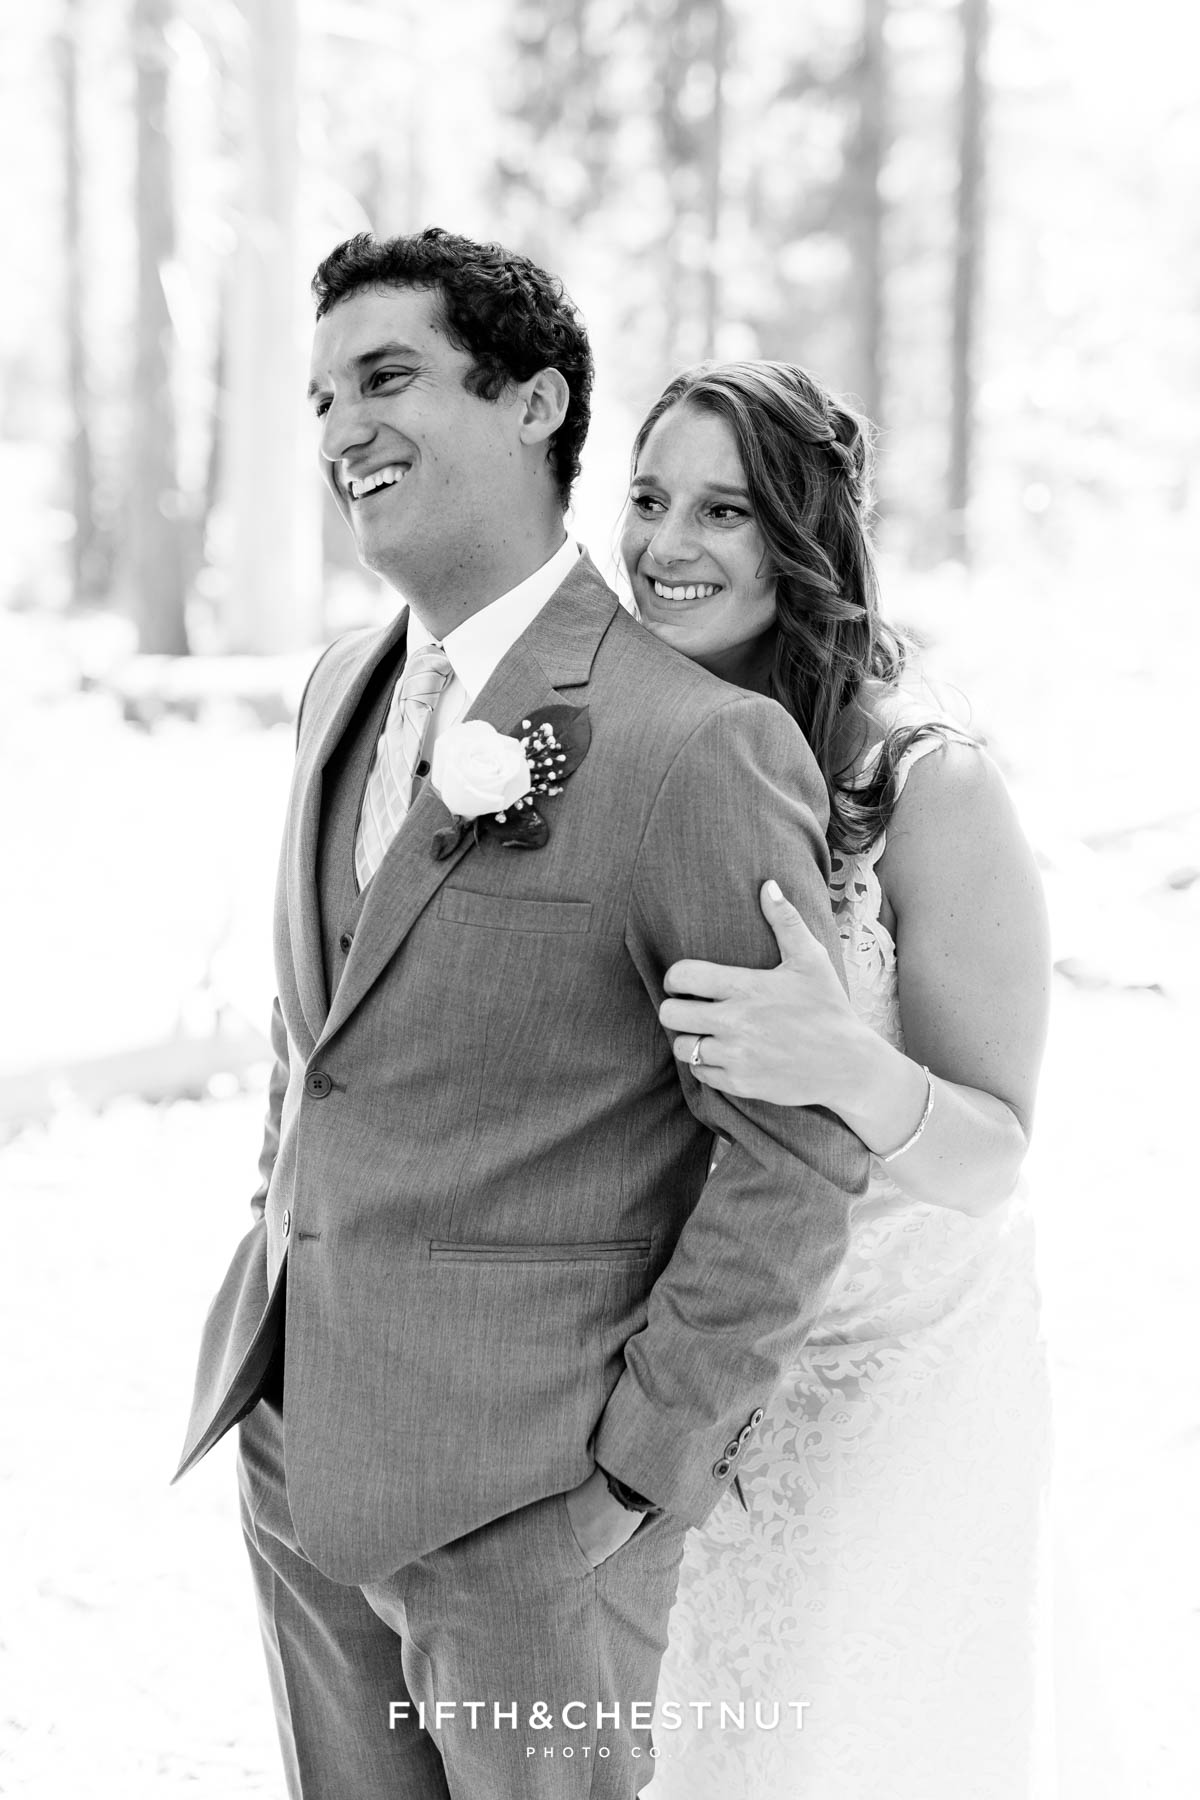 Bride embraces groom from behind after their sweet West shore wedding first look